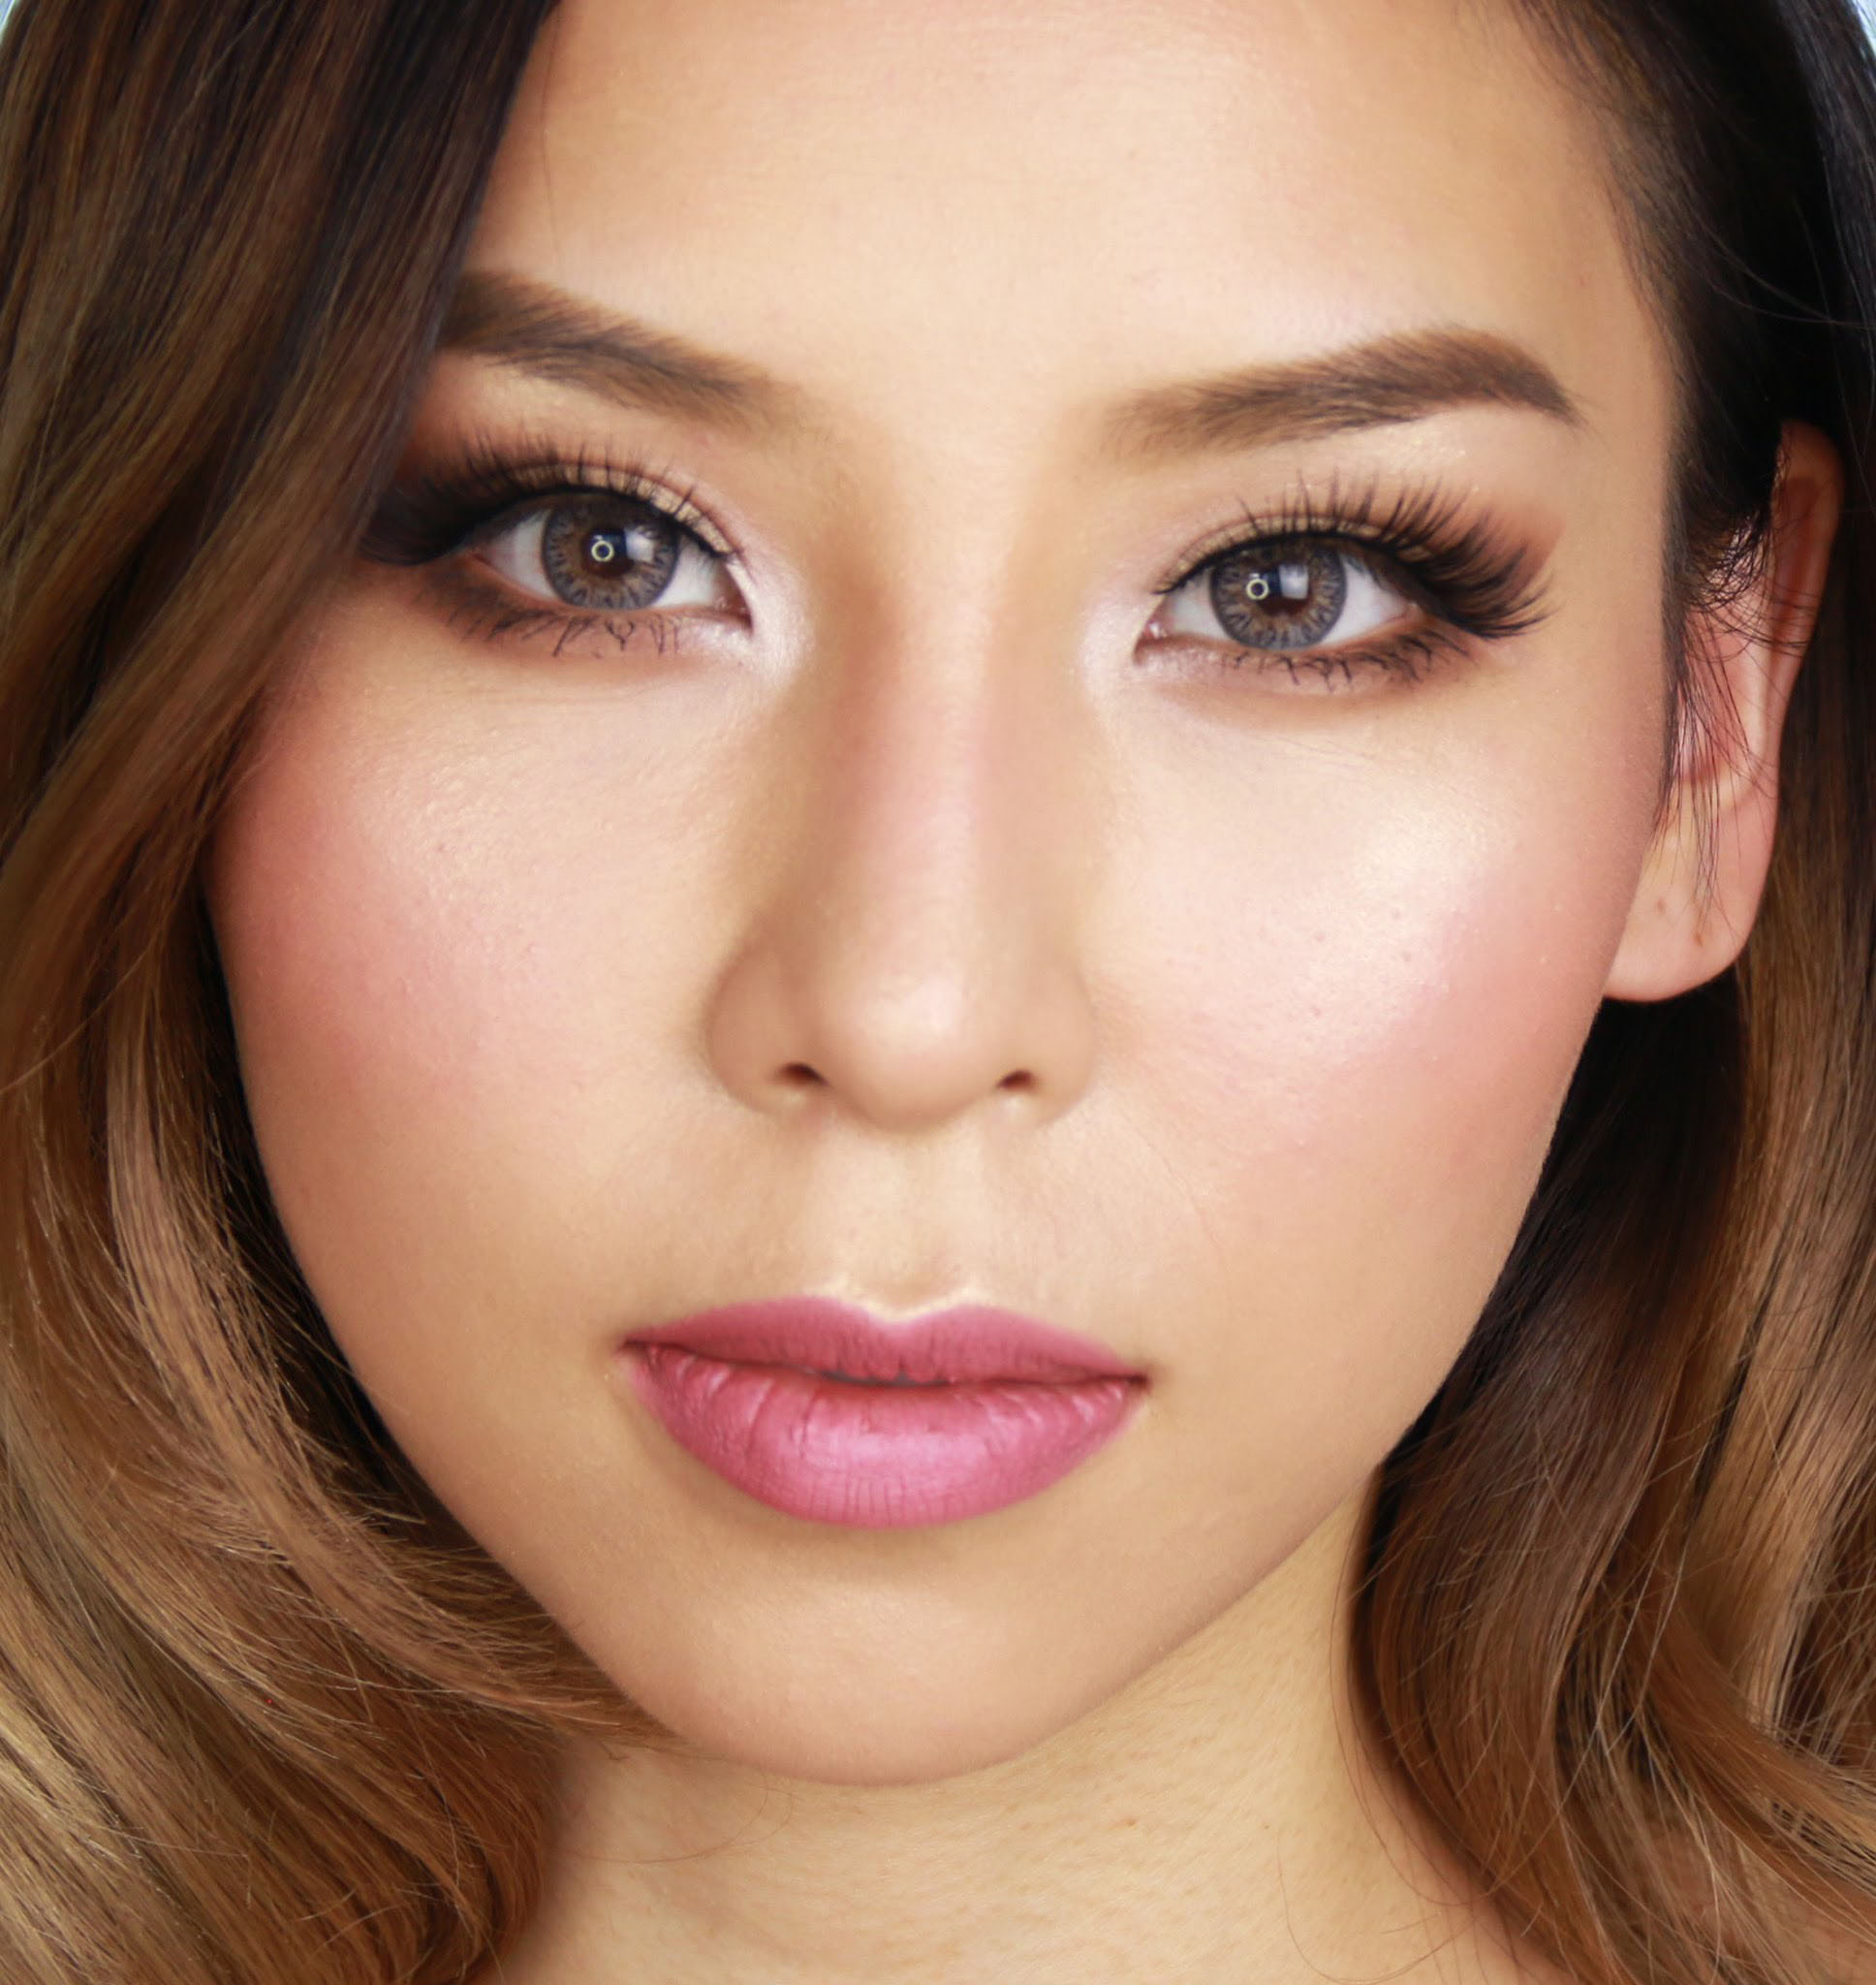 soft-natural-how-to-do-your-makeup-for-wedding-guest-beauty-pink-eyeshadow.jpg